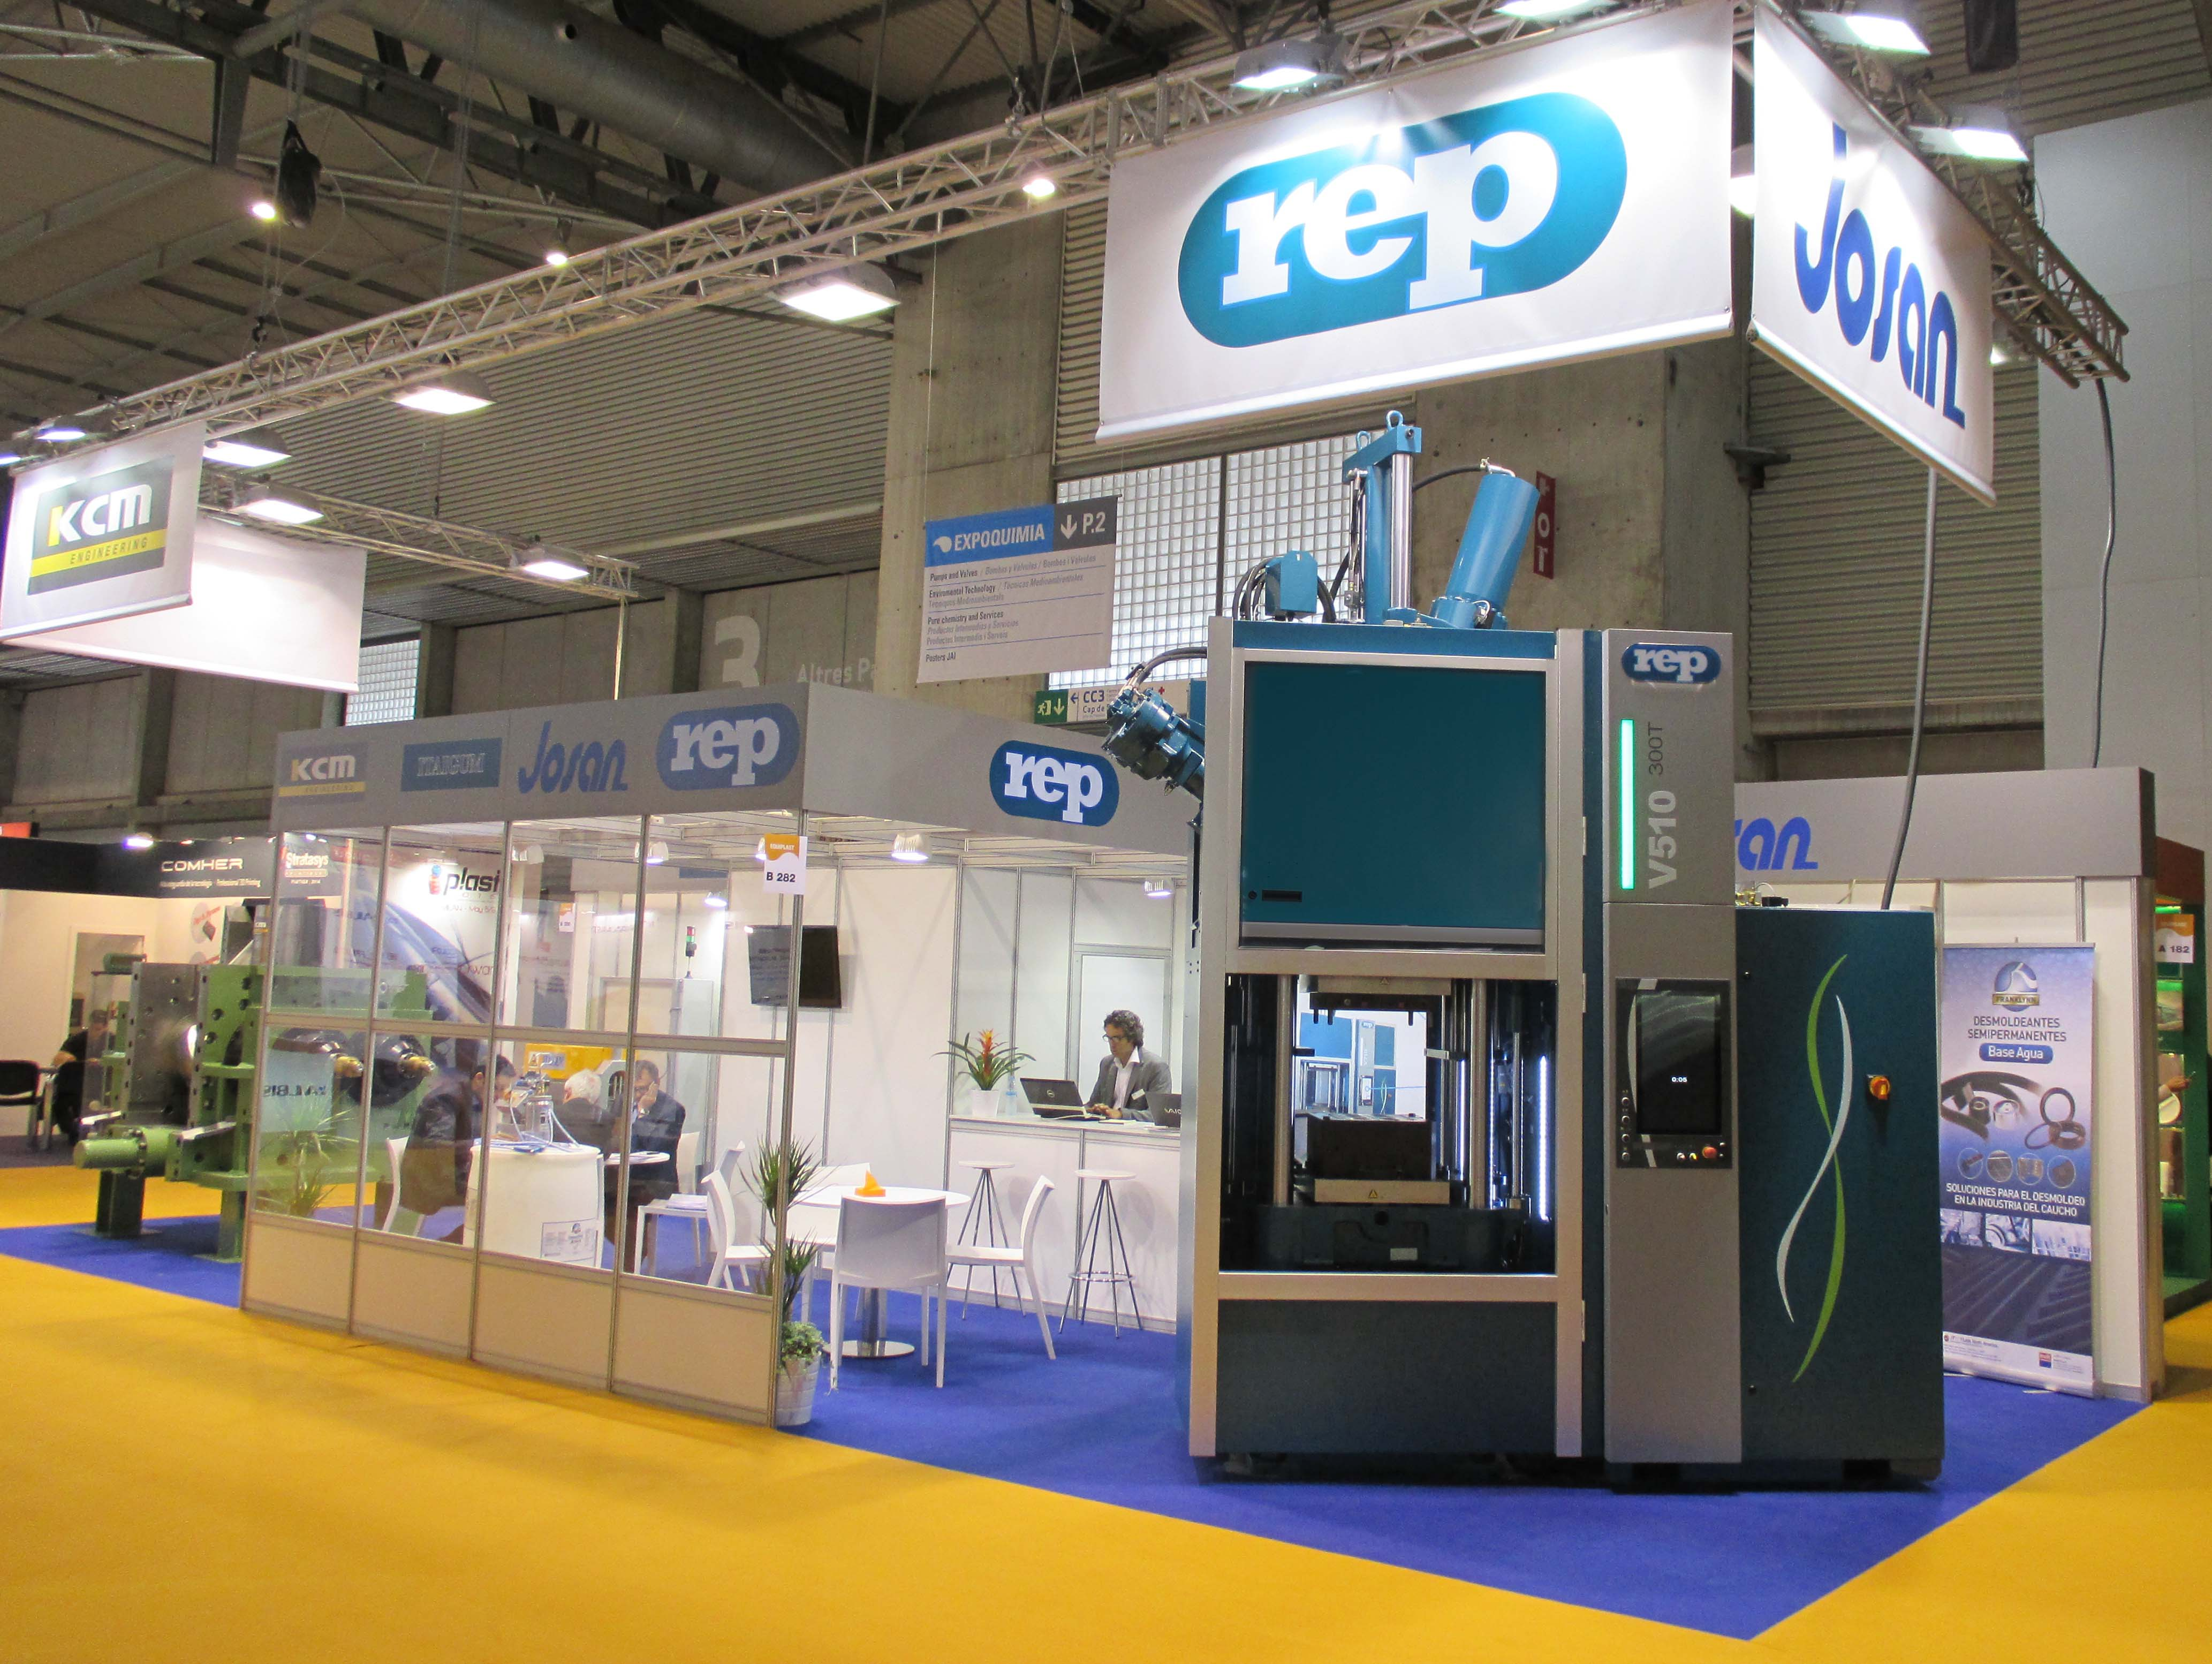 REP Stand Equiplast Barcelona 2014